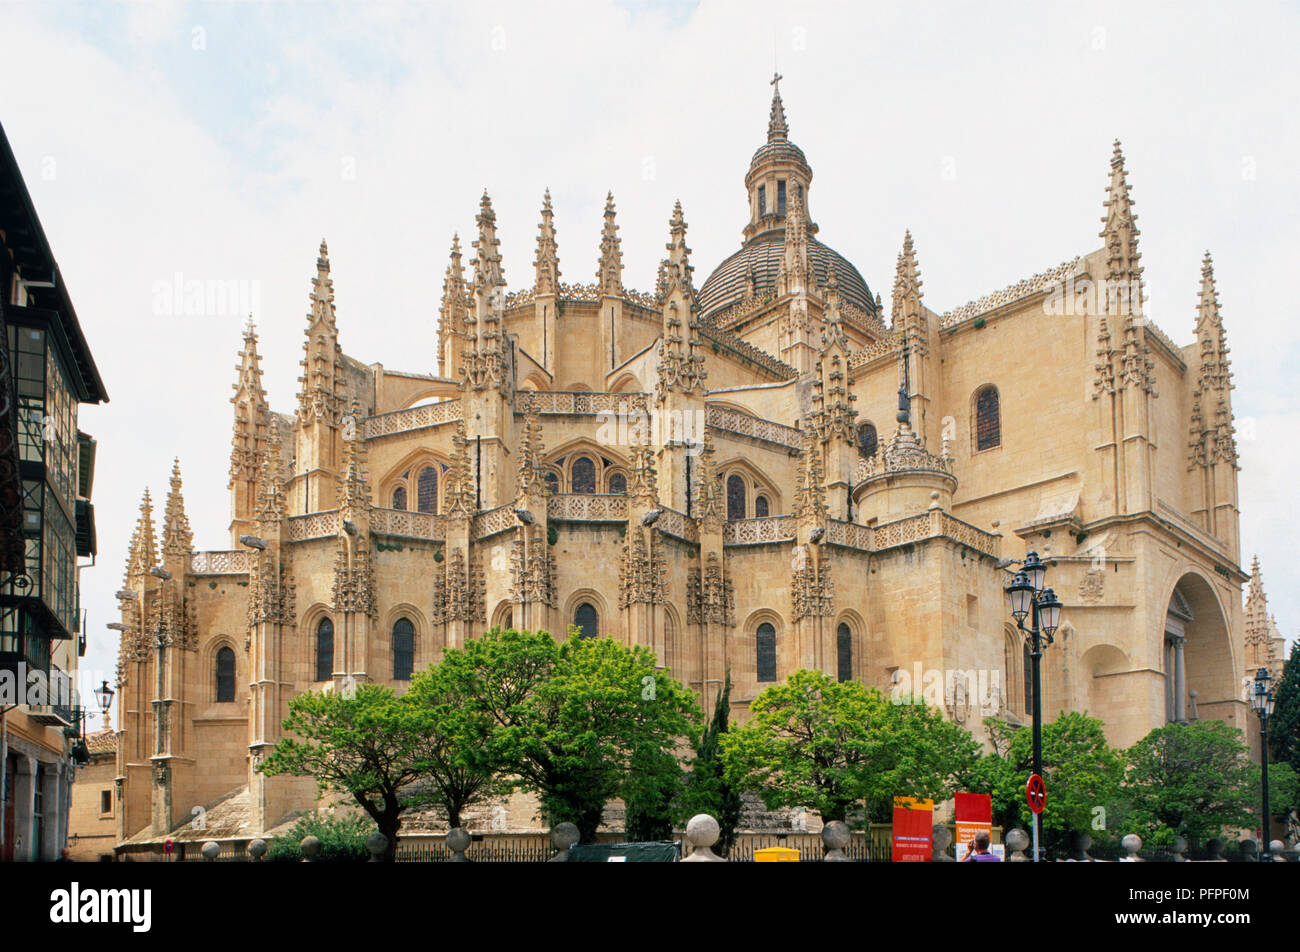 Spain, Segovia Cathedral, 16th century Gothic exterior - Stock Image